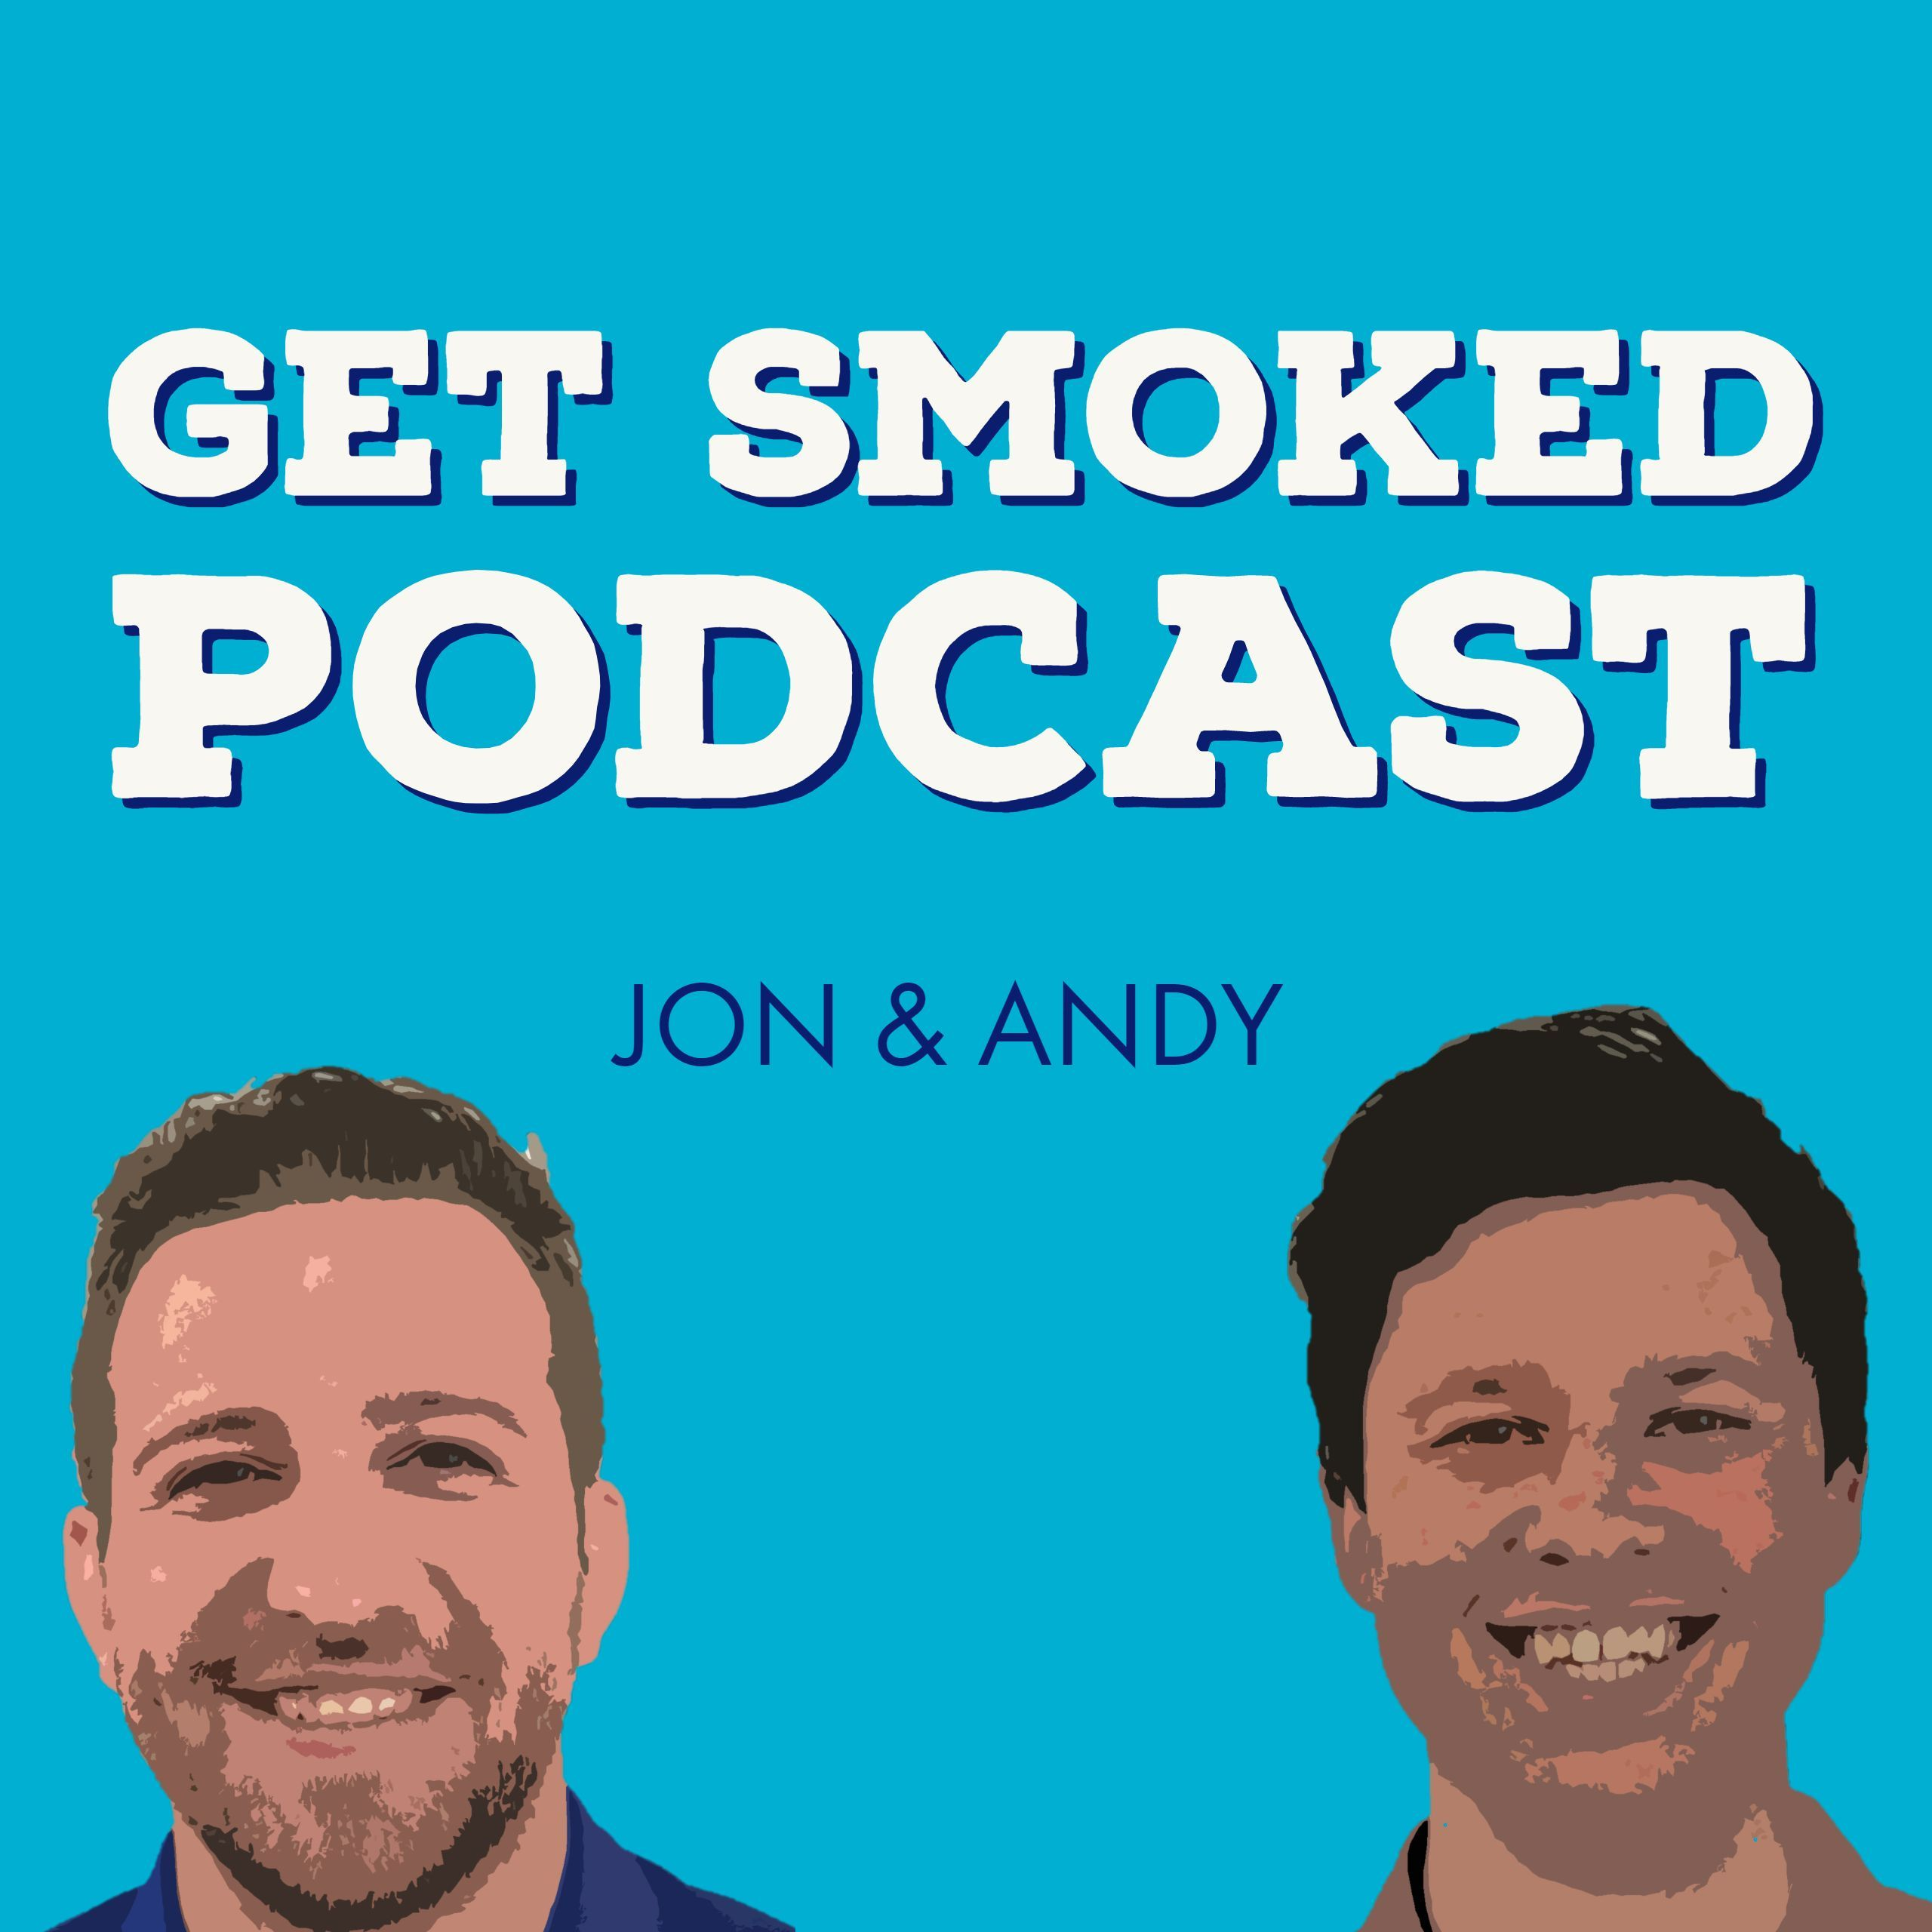 Episode 01 - 'Get smoked once, shame on you. Get smoked twice...you can't get smoked again'